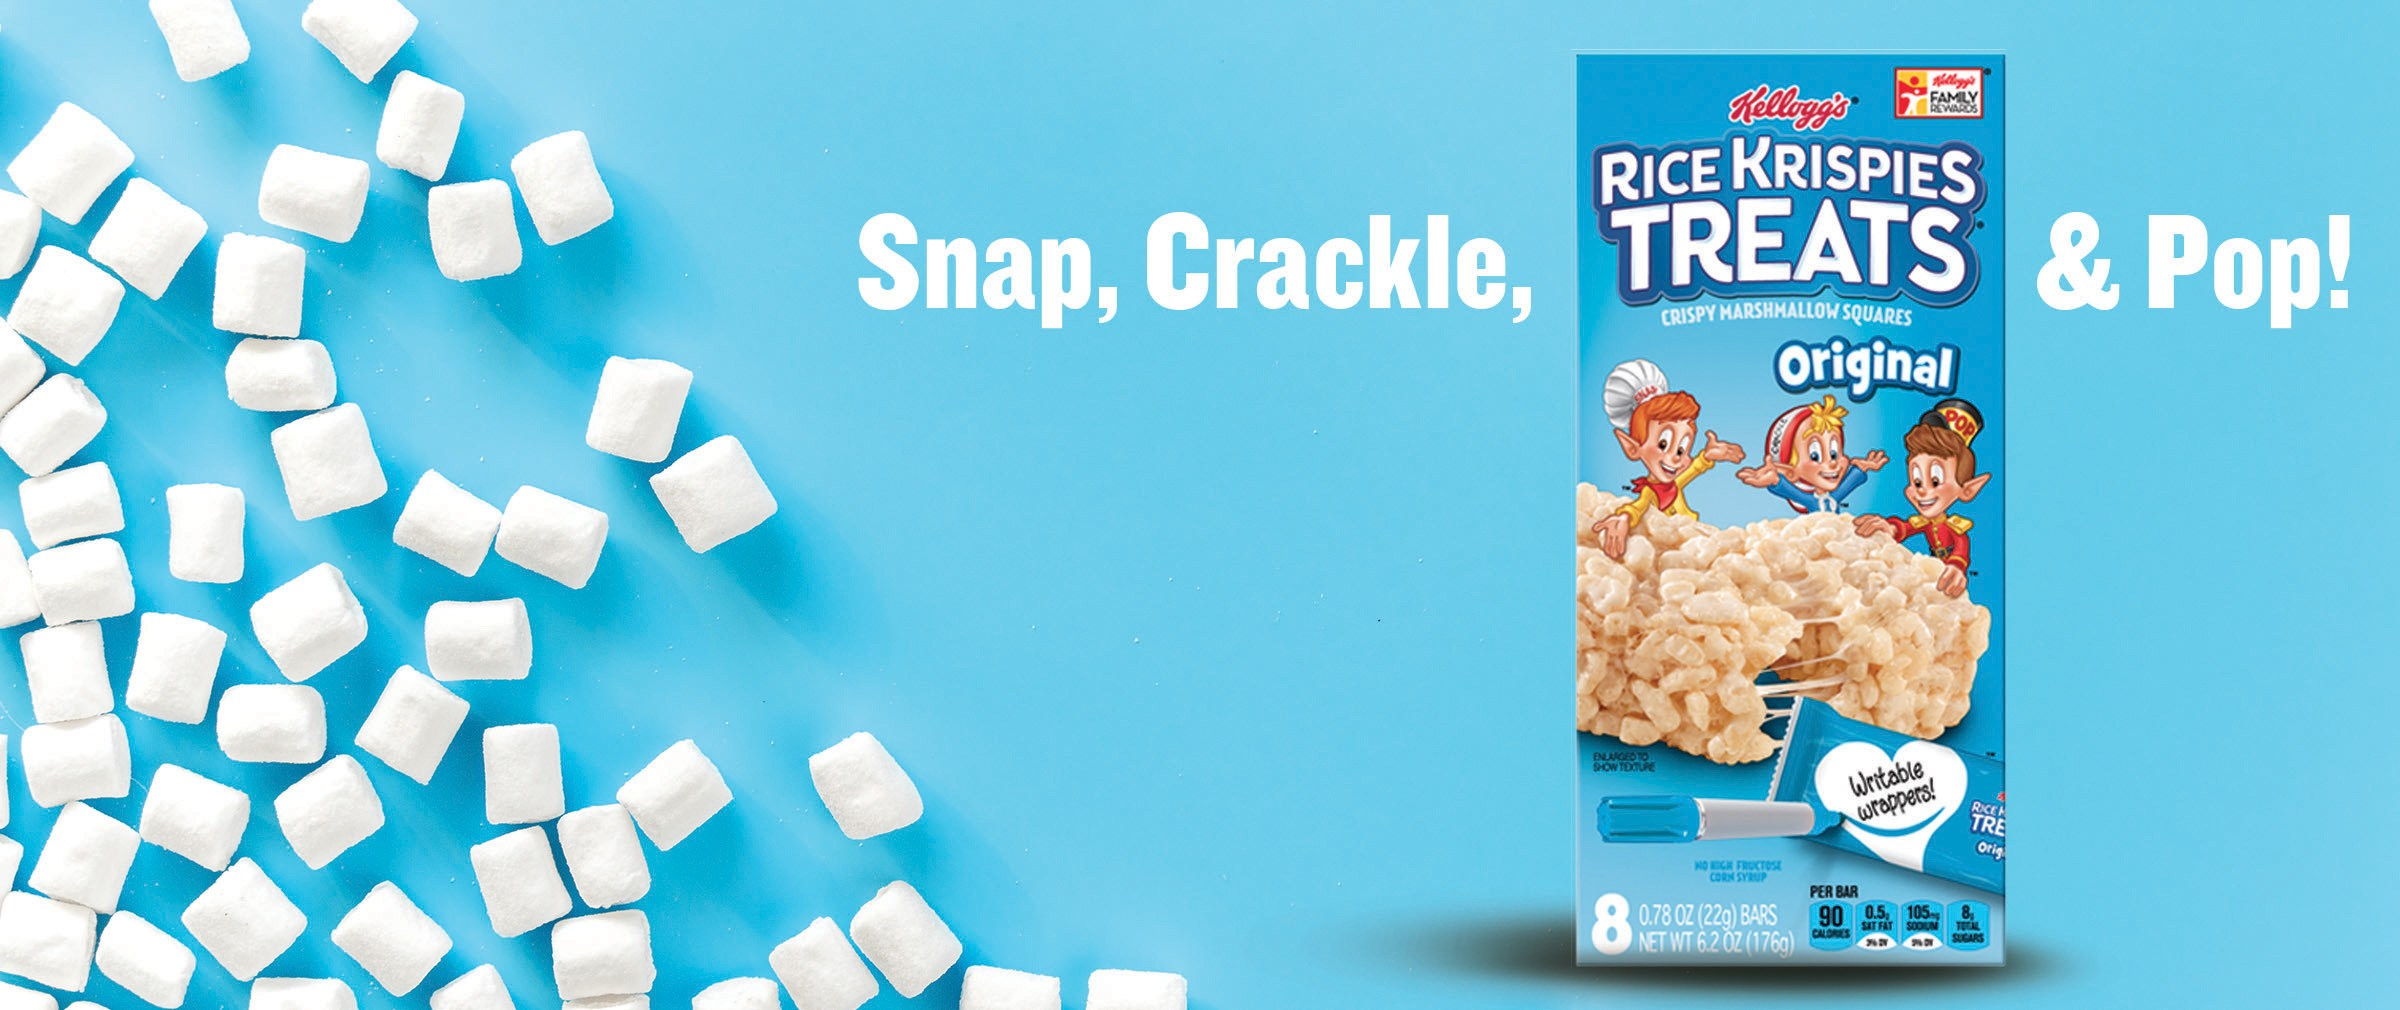 RiceKrispies_B2S-webslider